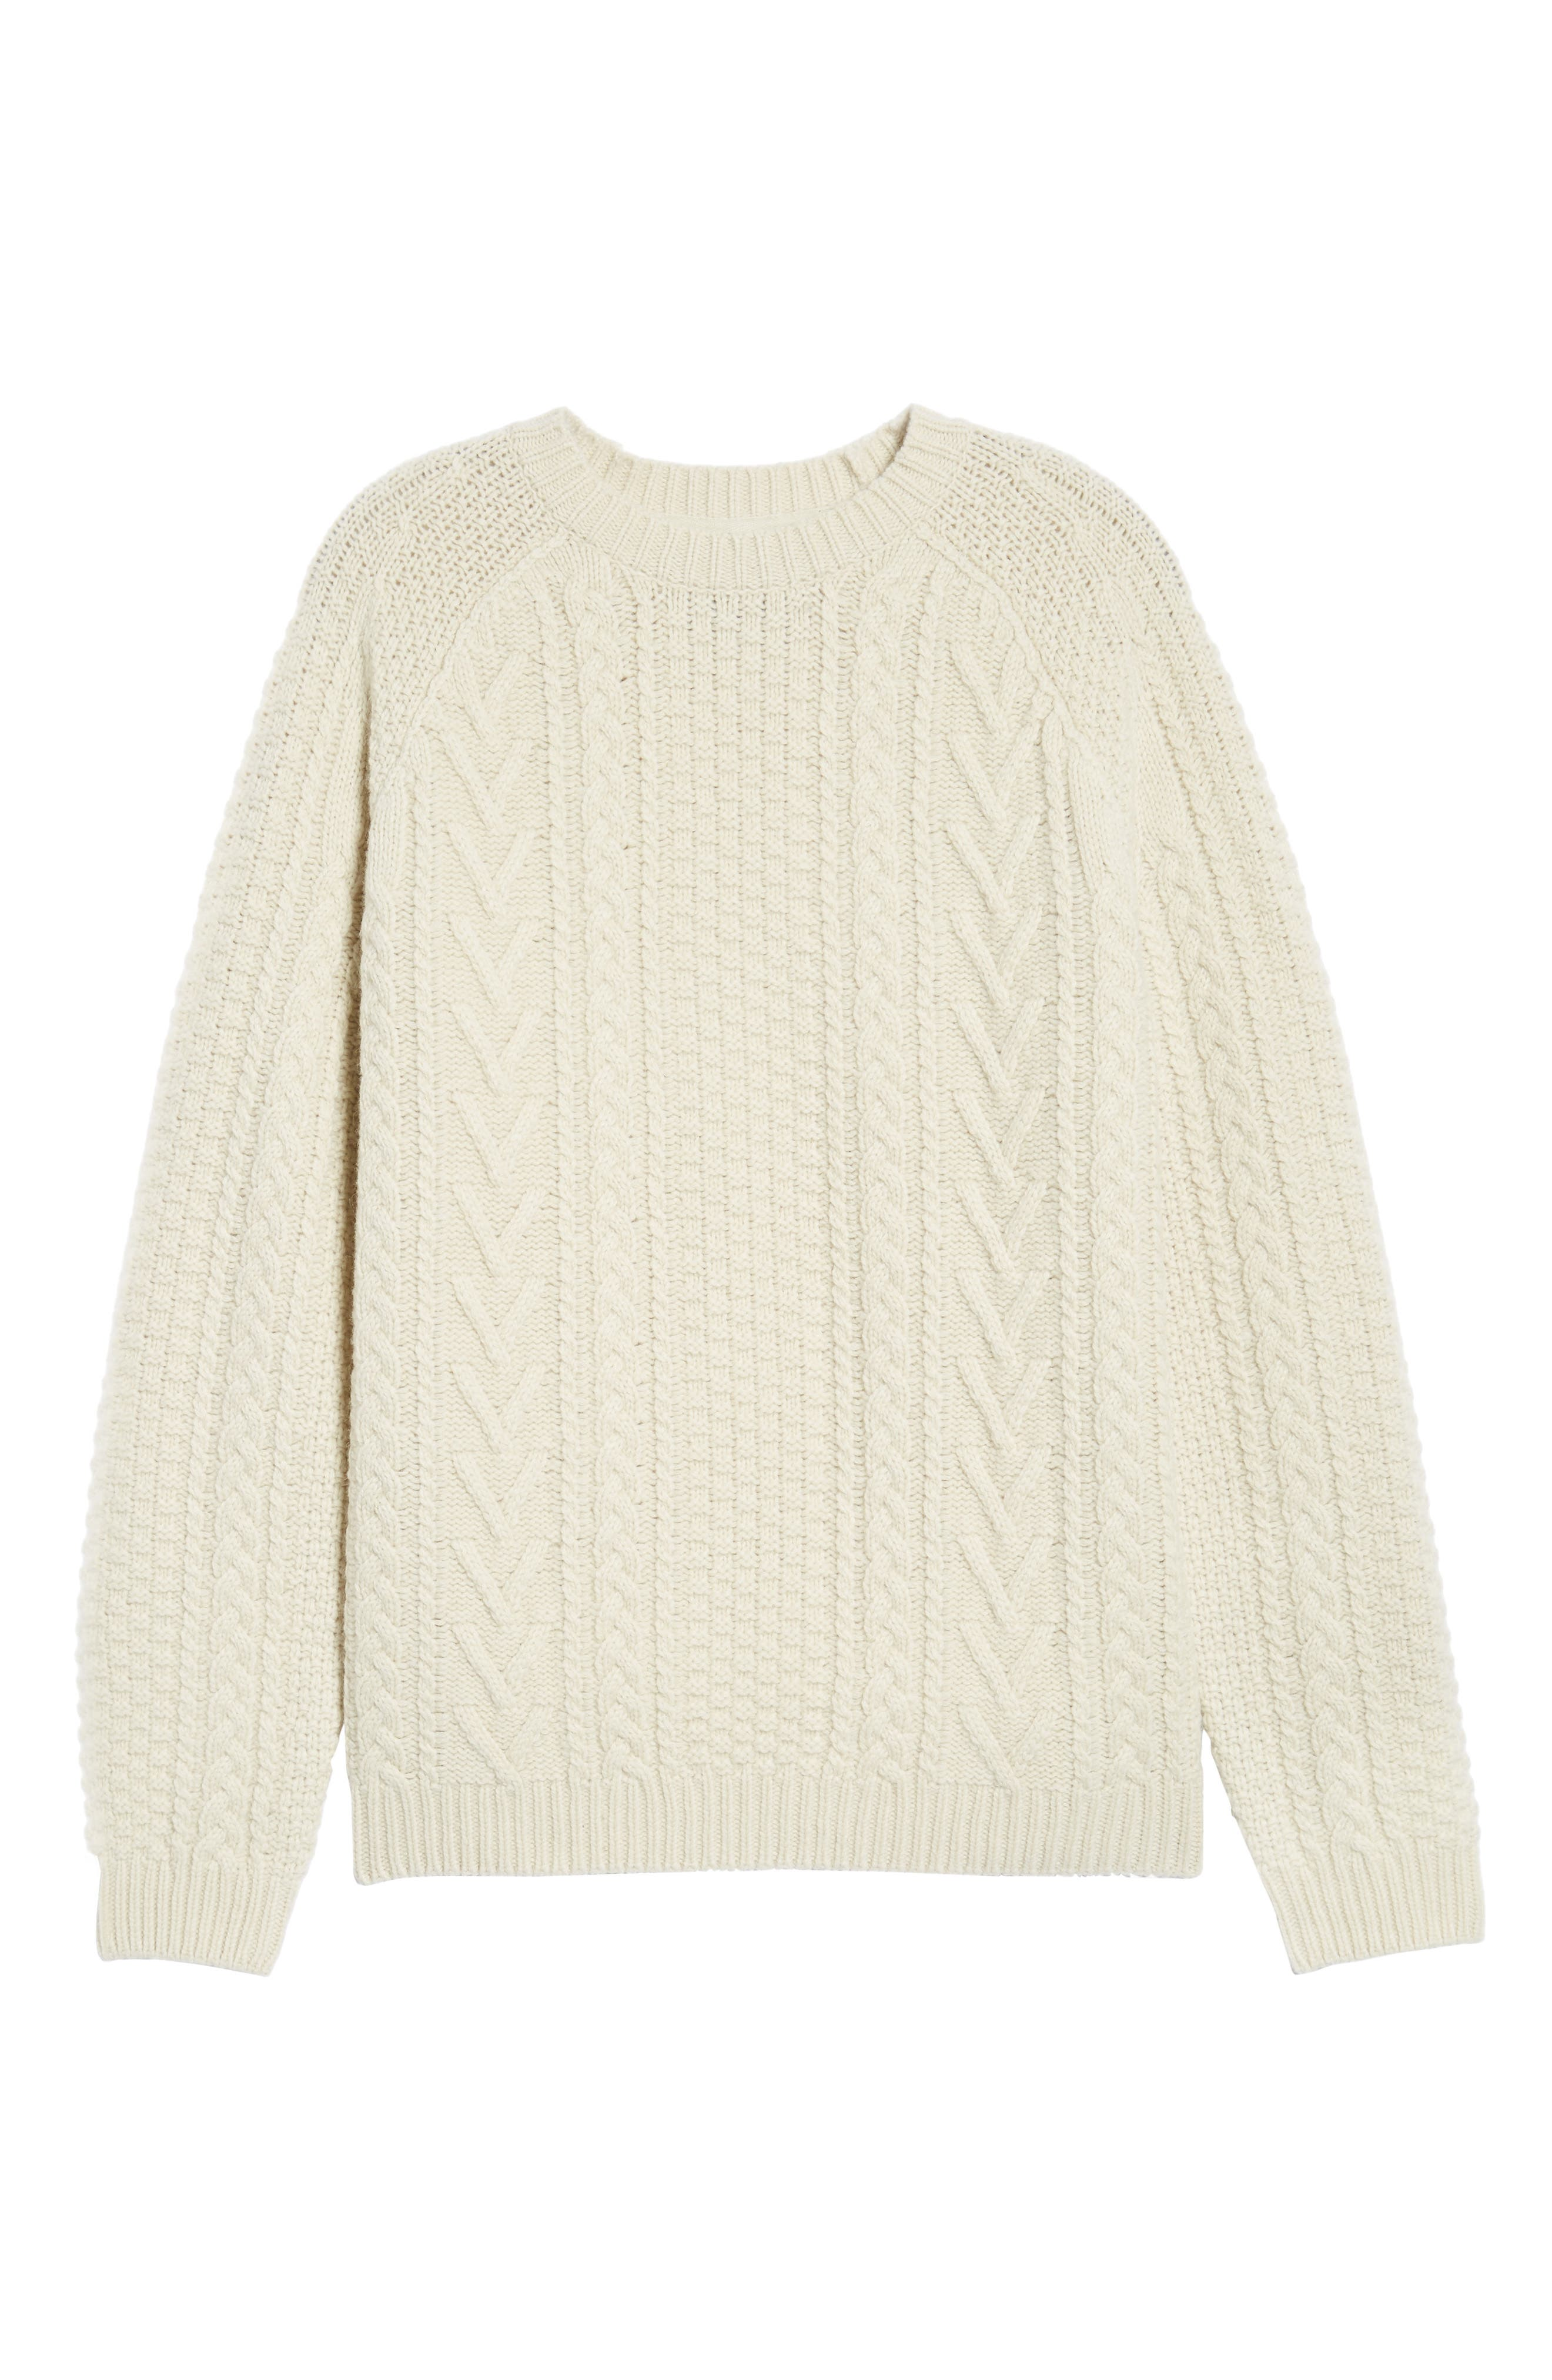 Fisherman Knit Wool Blend Sweater,                             Alternate thumbnail 6, color,                             OFF WHITE